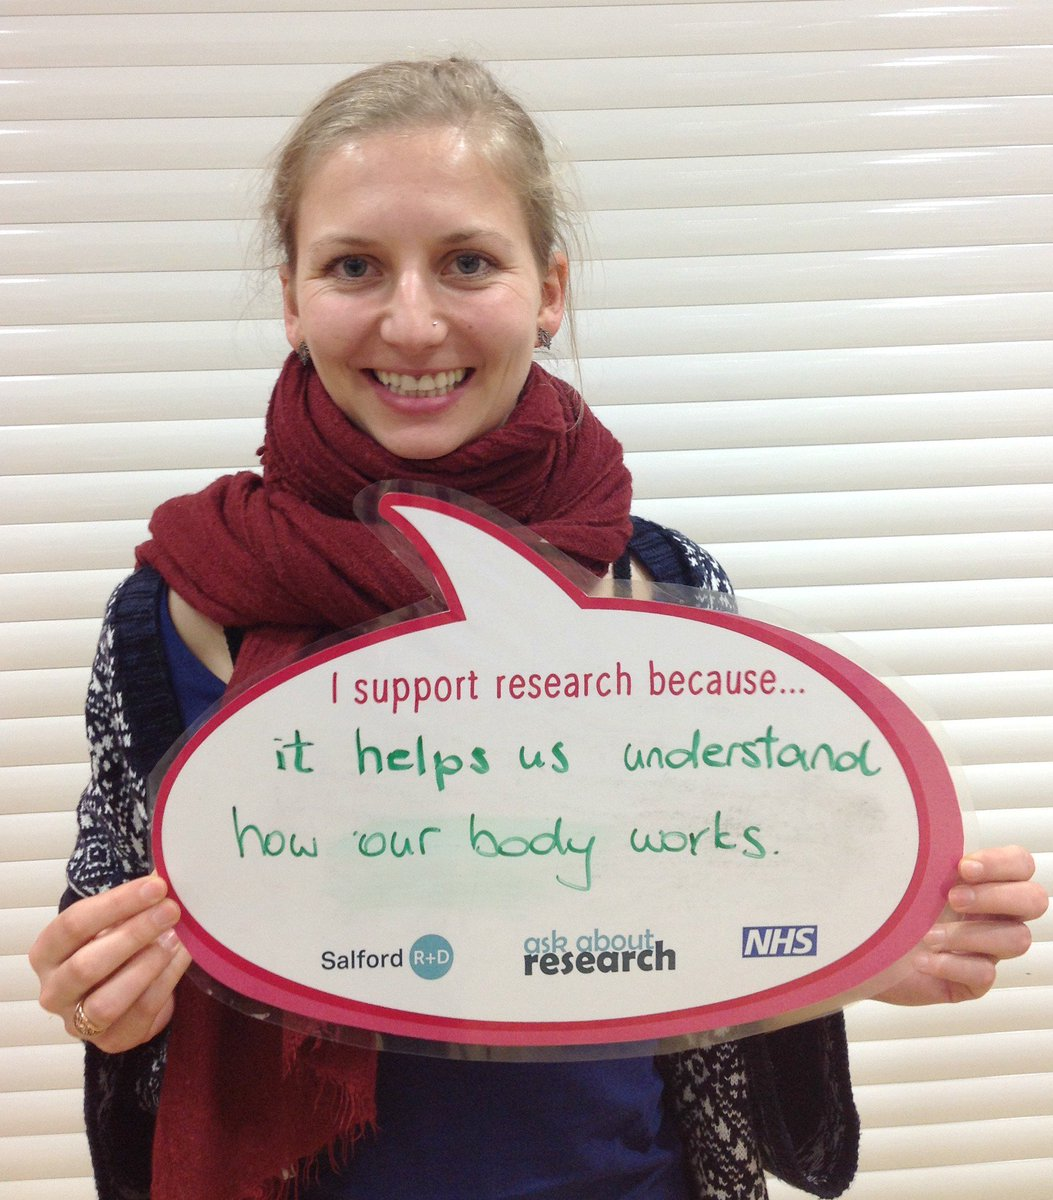 Here's Katja from @MccirUoM with a great #whywedoresearch as part of our #artinresearch project. Thanks Katja! https://t.co/FahizF7e2B